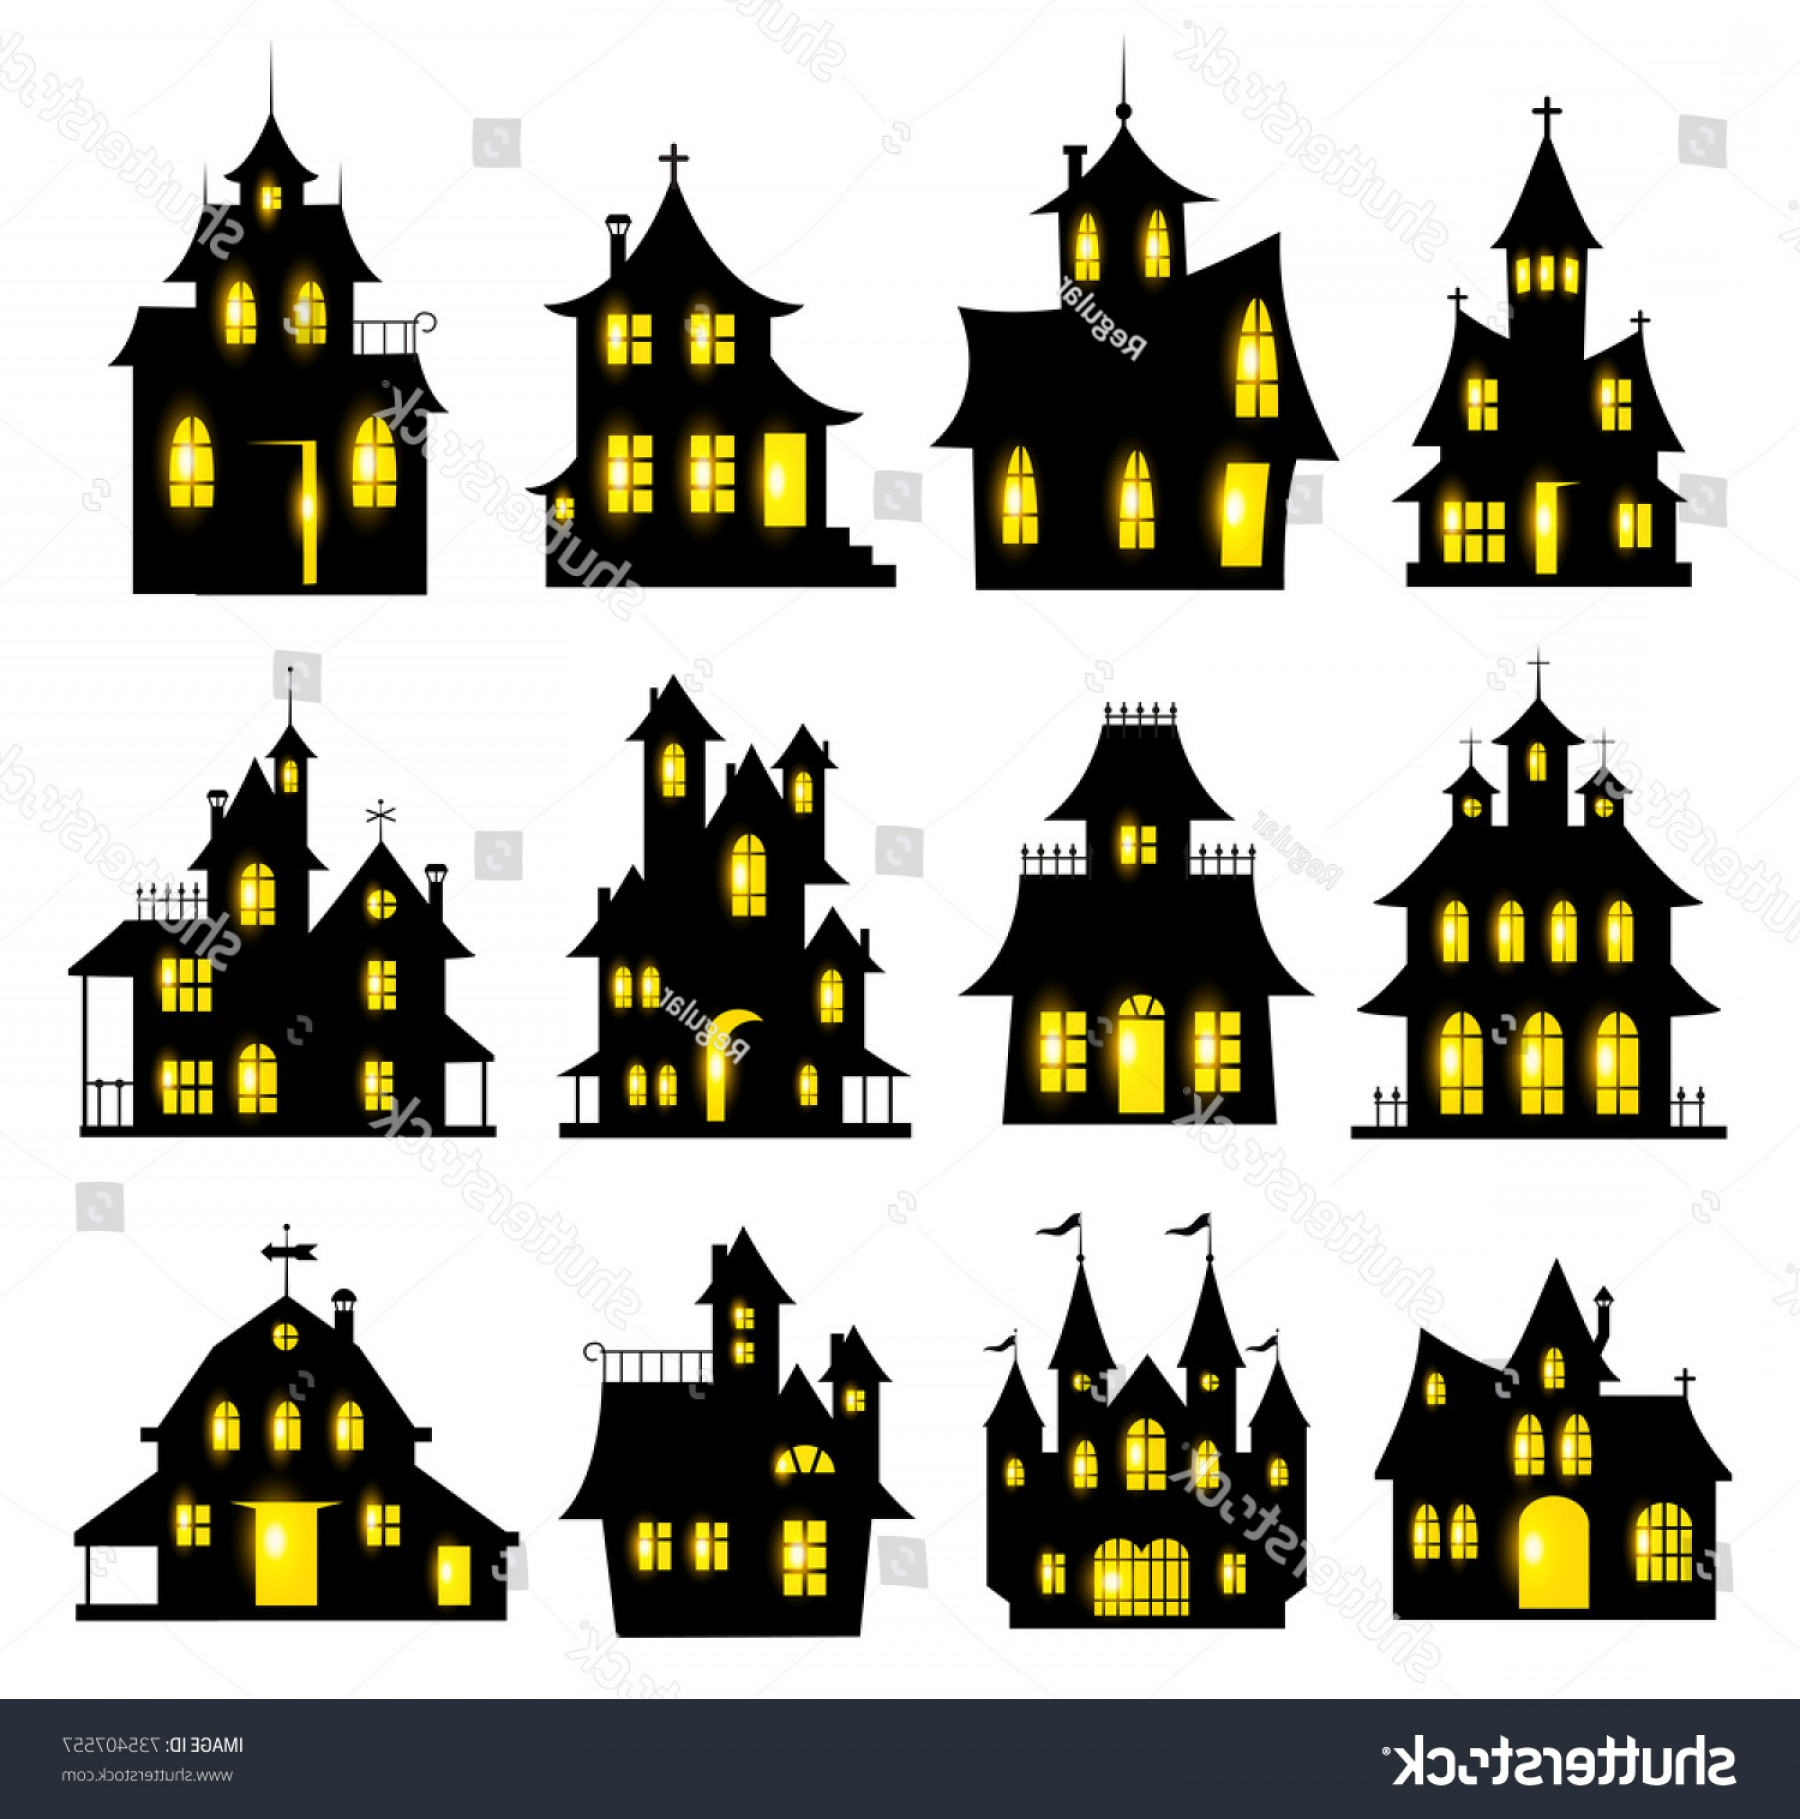 Halloween Haunted House Silhouette Vector: Halloween Haunted House Set Isolated On